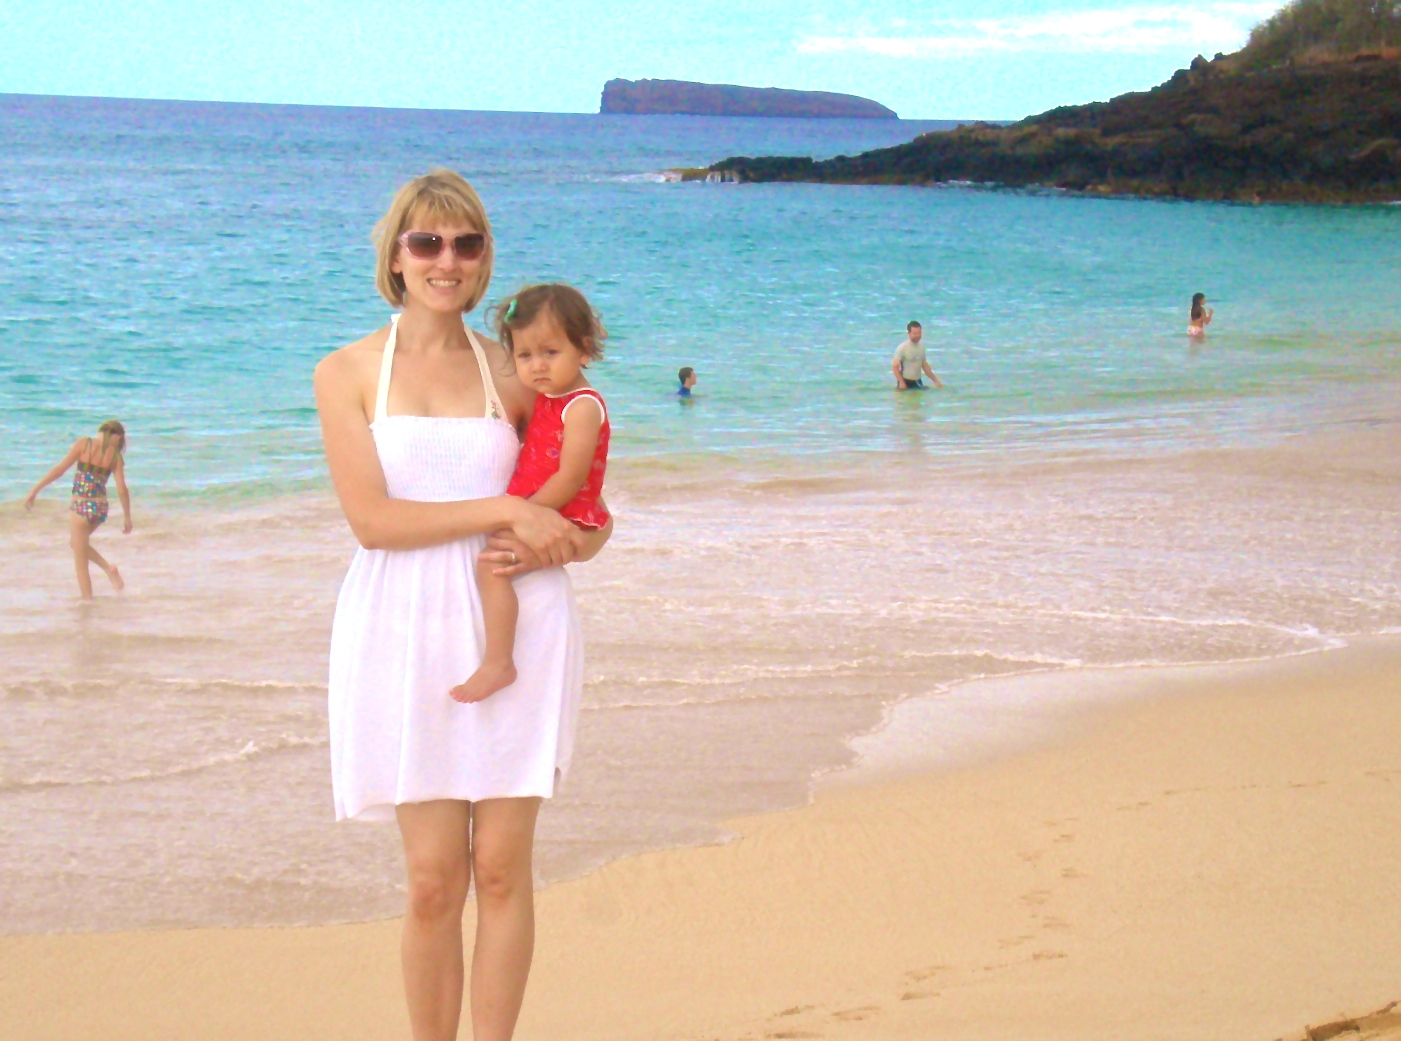 My daughter and I in Maui, Hawaii (2010)